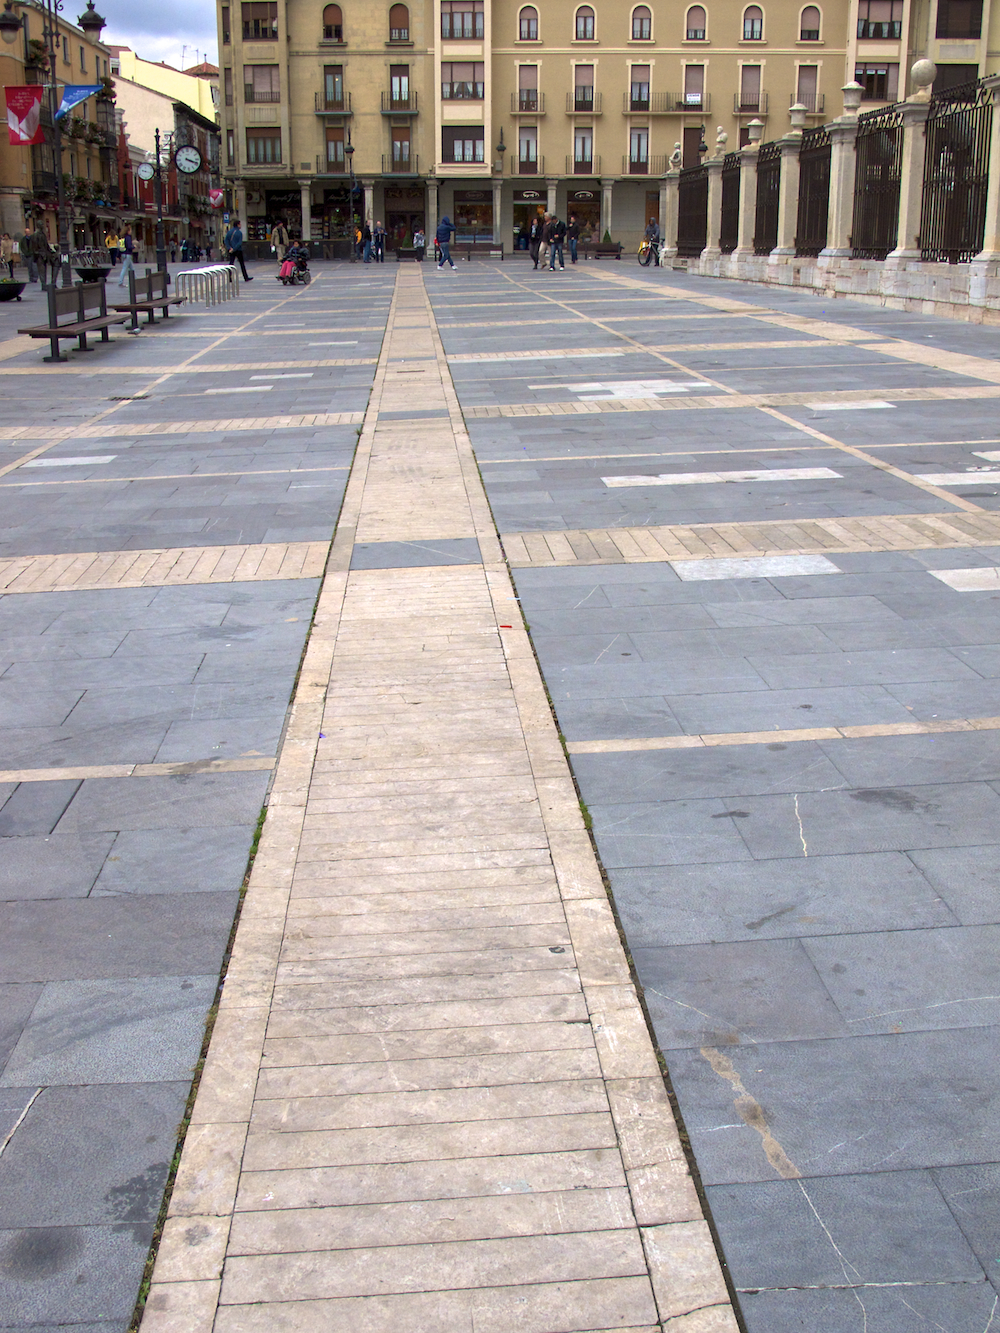 Square in front of Cathedral, Leon Spain